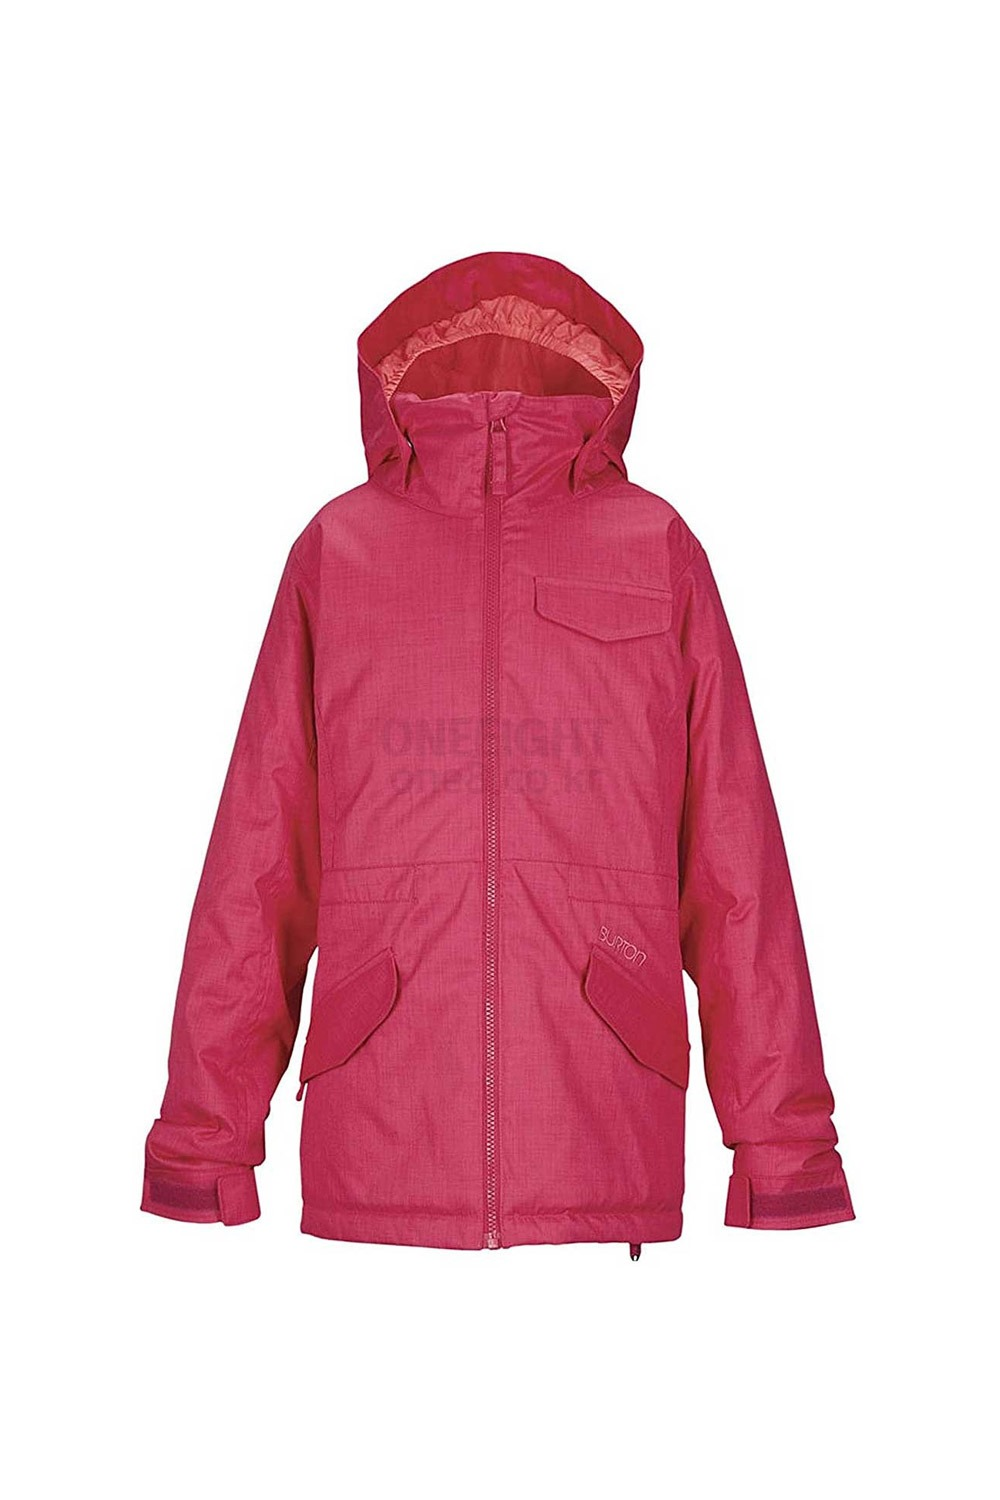 버튼 키즈 보드복 걸스 자켓 8B2414MQ/MRL BURTON GIRLS RUBY JACKET_AYB2414MQ